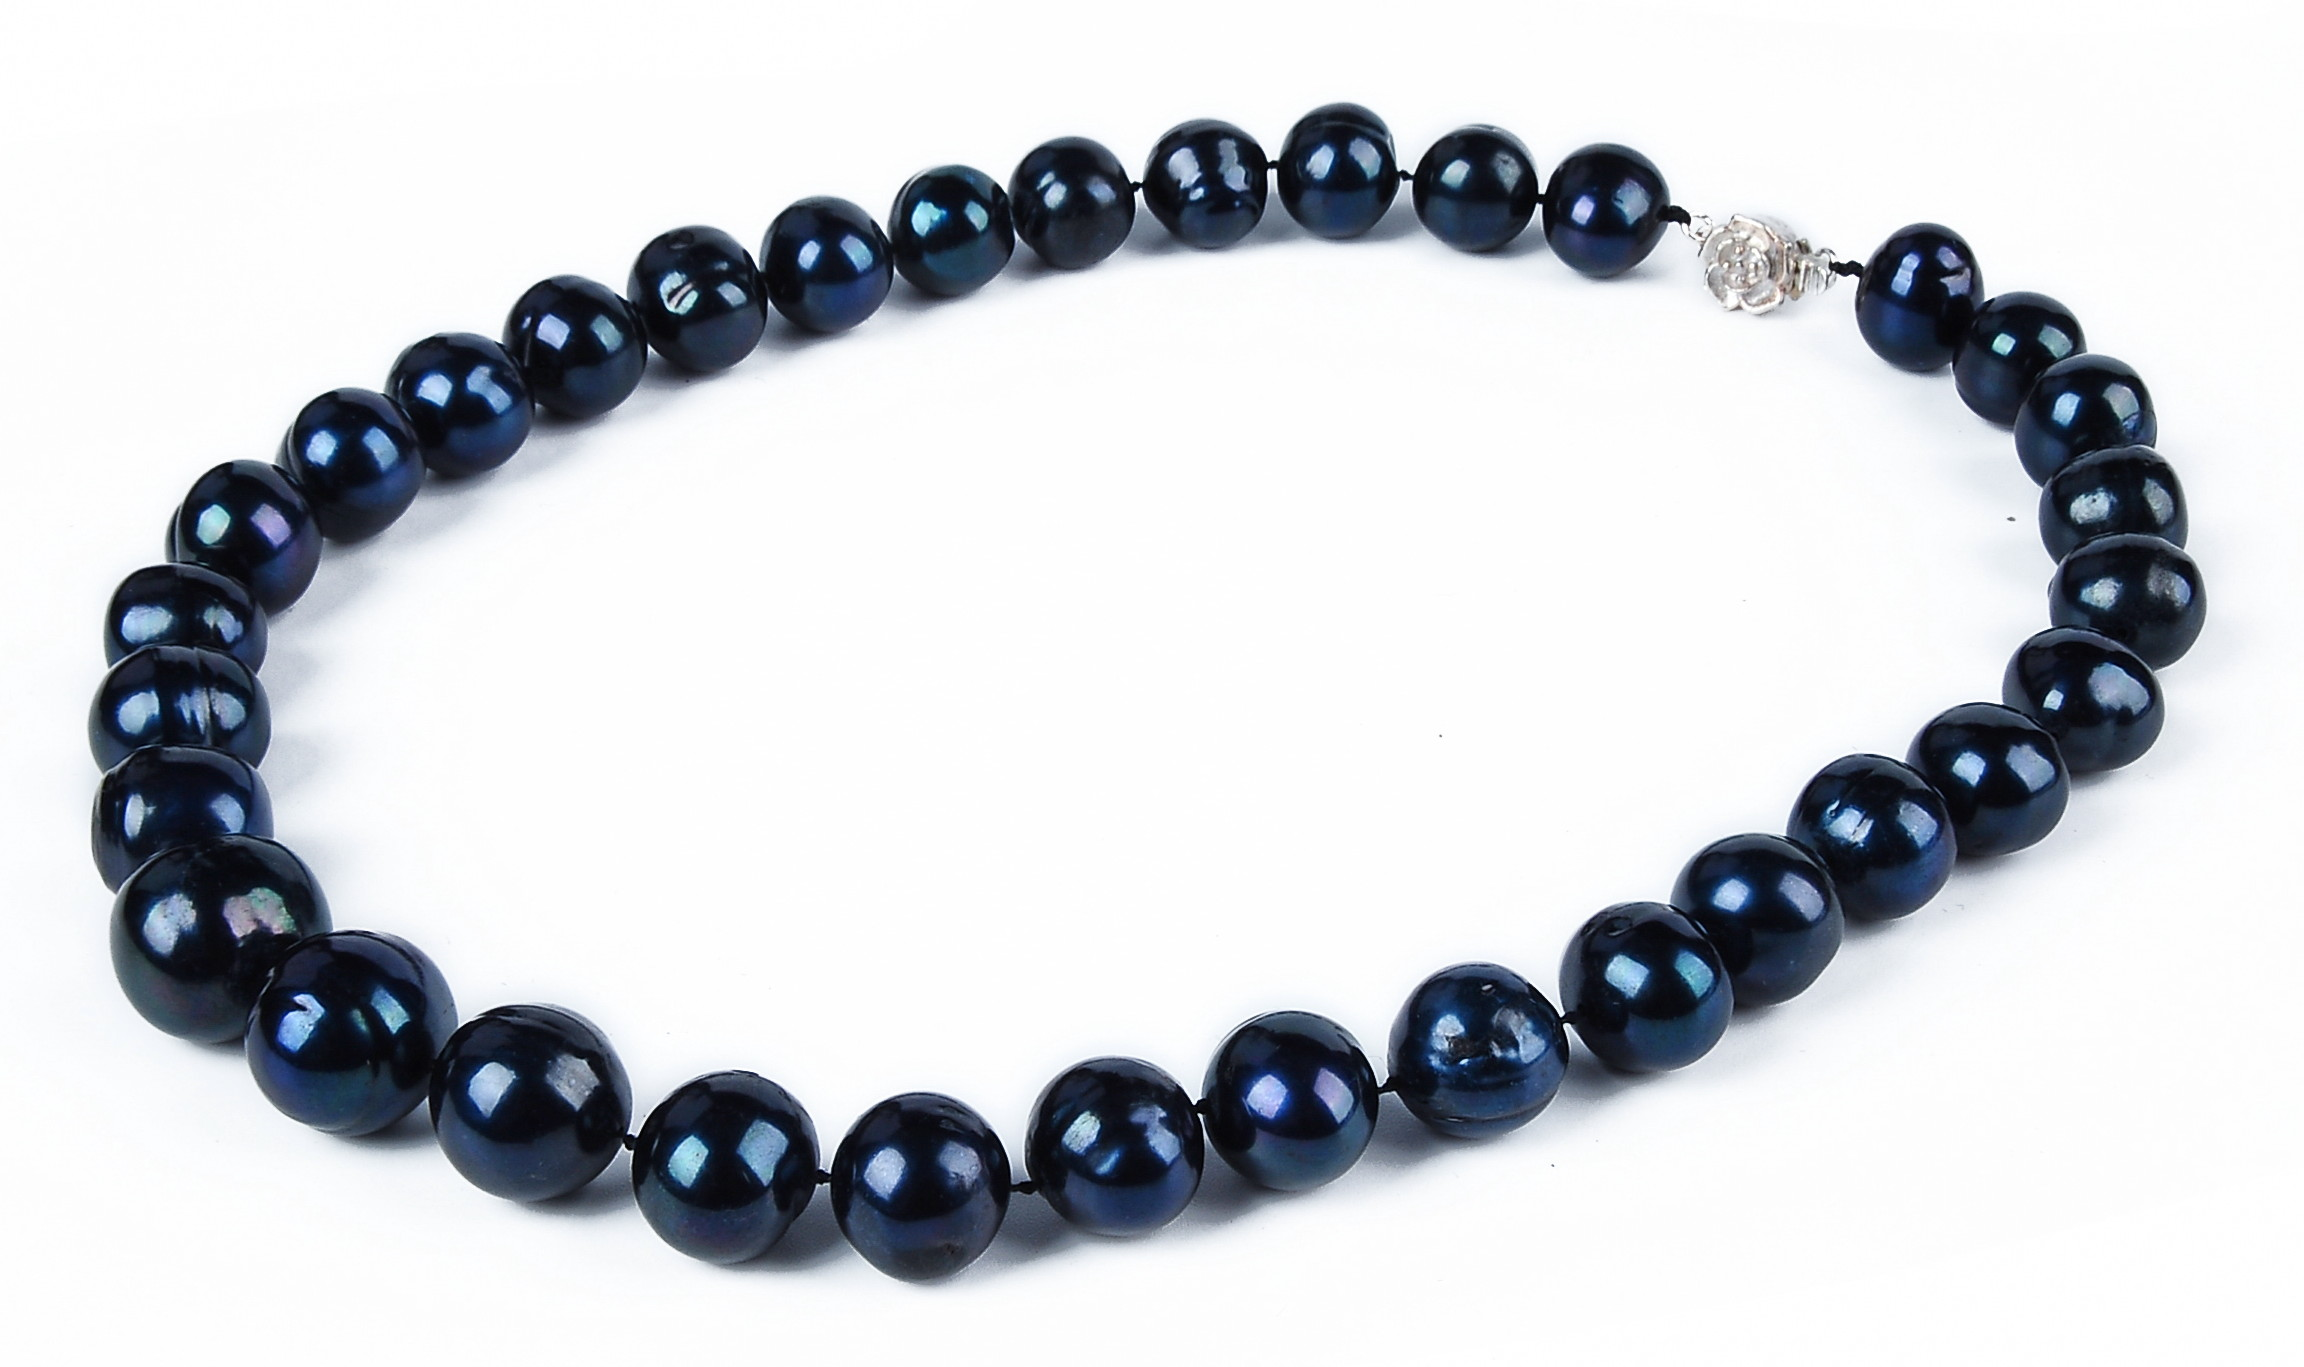 Huge 16mm AA+ Lustrous Black Freshwater Pearl Necklace -nk128